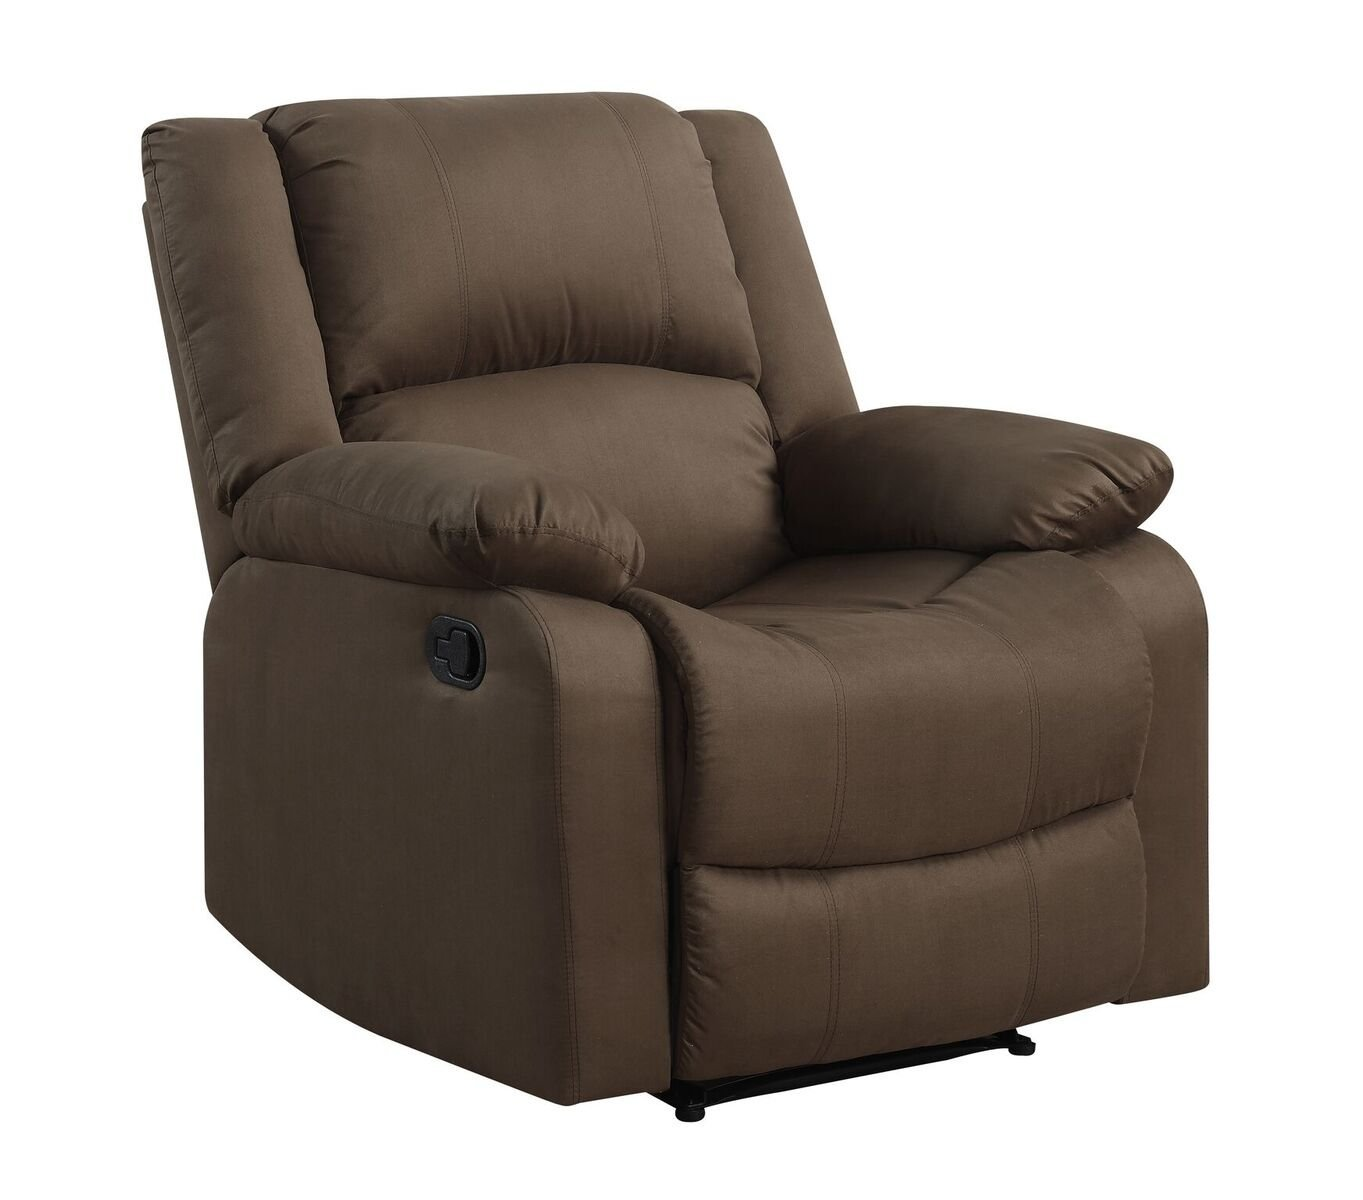 Pearington Lyon Microfiber Living Room Recliner Chair, Chocolate